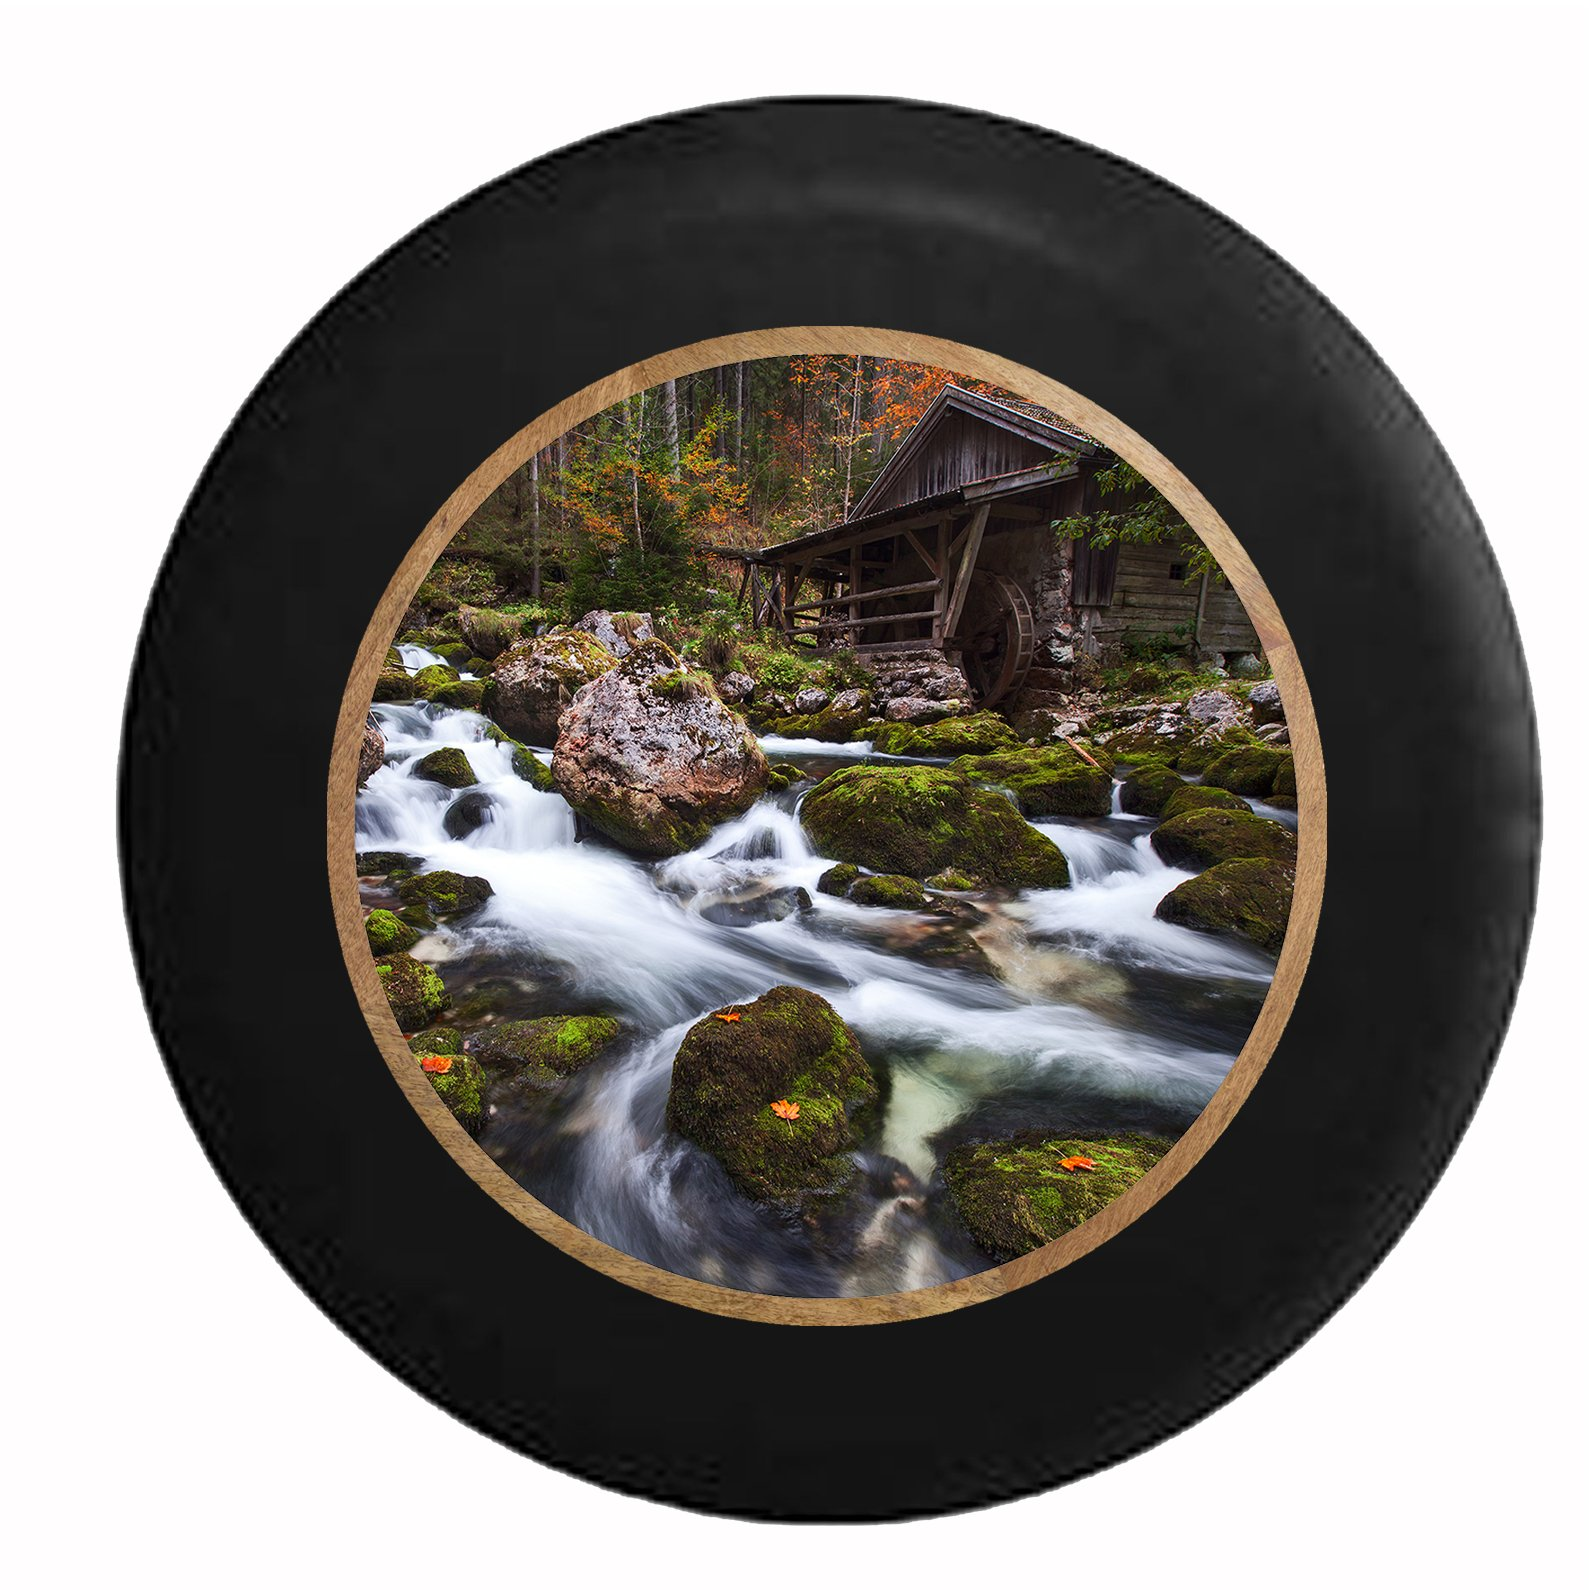 Pike Outdoors Full Color Mystic Enchanted Woods Water Mill House on Rocky River Spare Tire Cover fits SUV Camper RV Accessories Black 33 in by Pike Outdoors